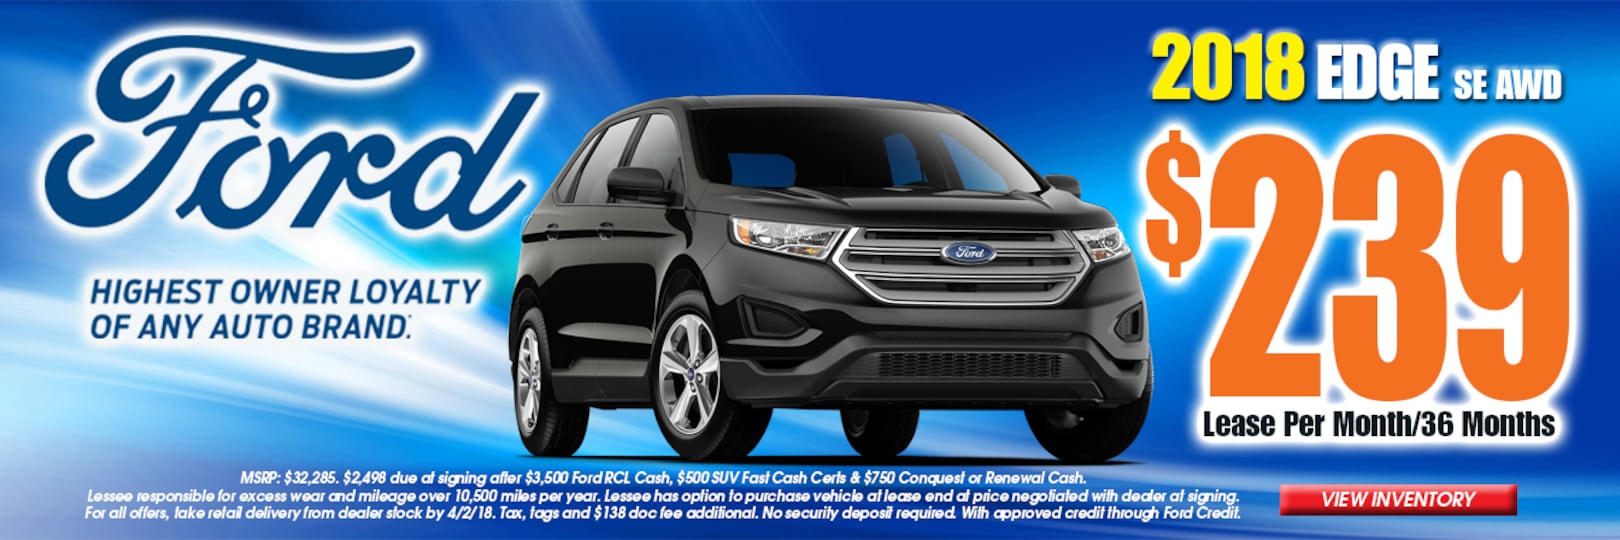 All Chevy chevy 21 hellertown pa : Horsham's Chapman Ford of Horsham | New and Used Ford Cars